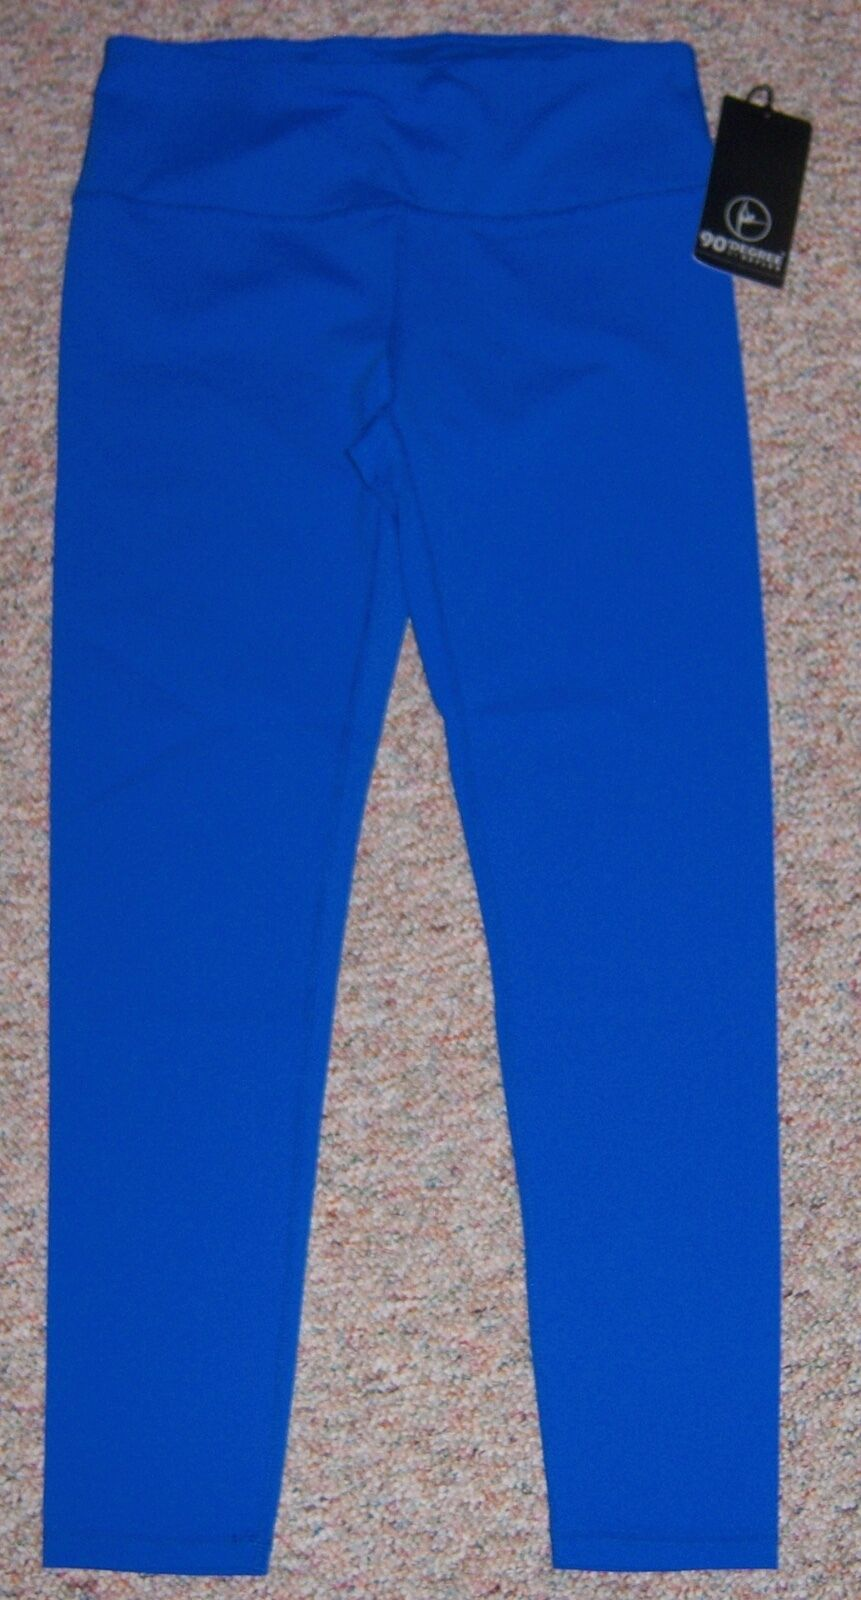 90 DEGREE By REFLEX bluee Athletic Compression Leggings Pants Size X-Large NWT